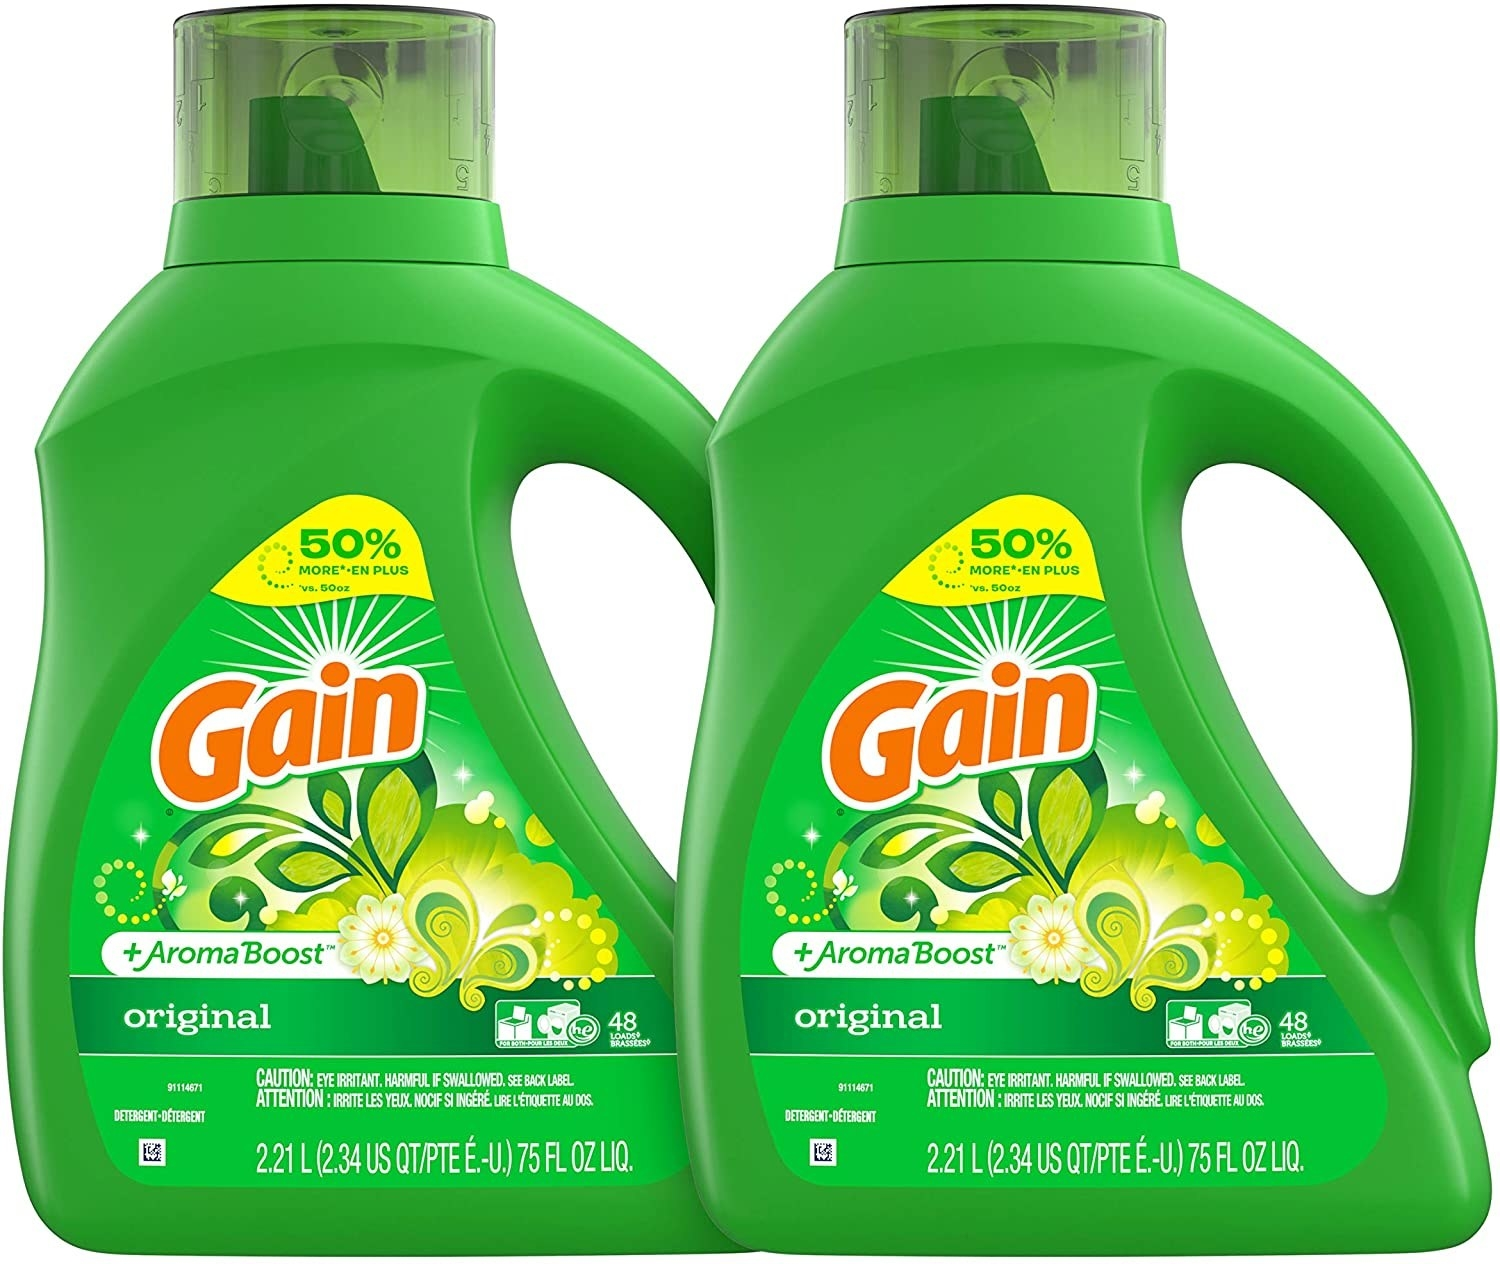 the two green bottles of Gain detergent